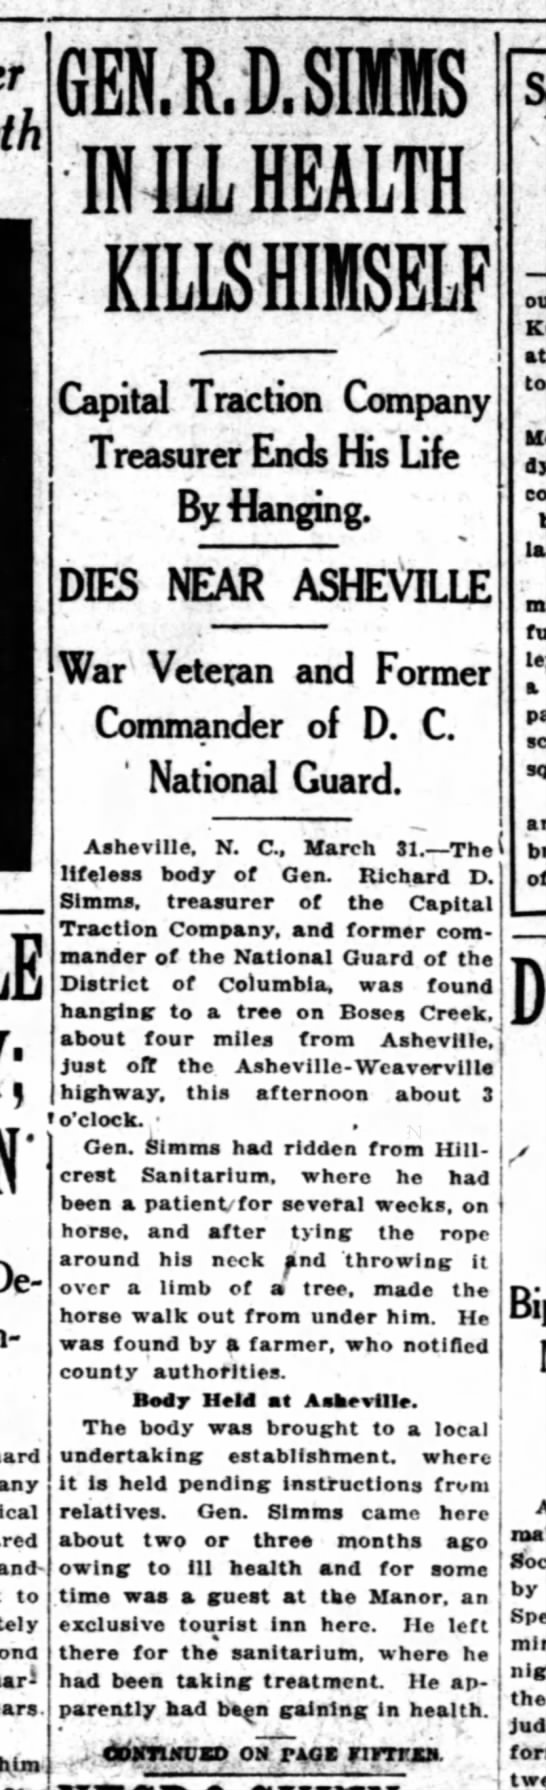 Obituary for General Richard D. Simms, Washington Herald, April 1, 1920 - and to fim GERGEShfI R MILIEALTh KLlIISELF...